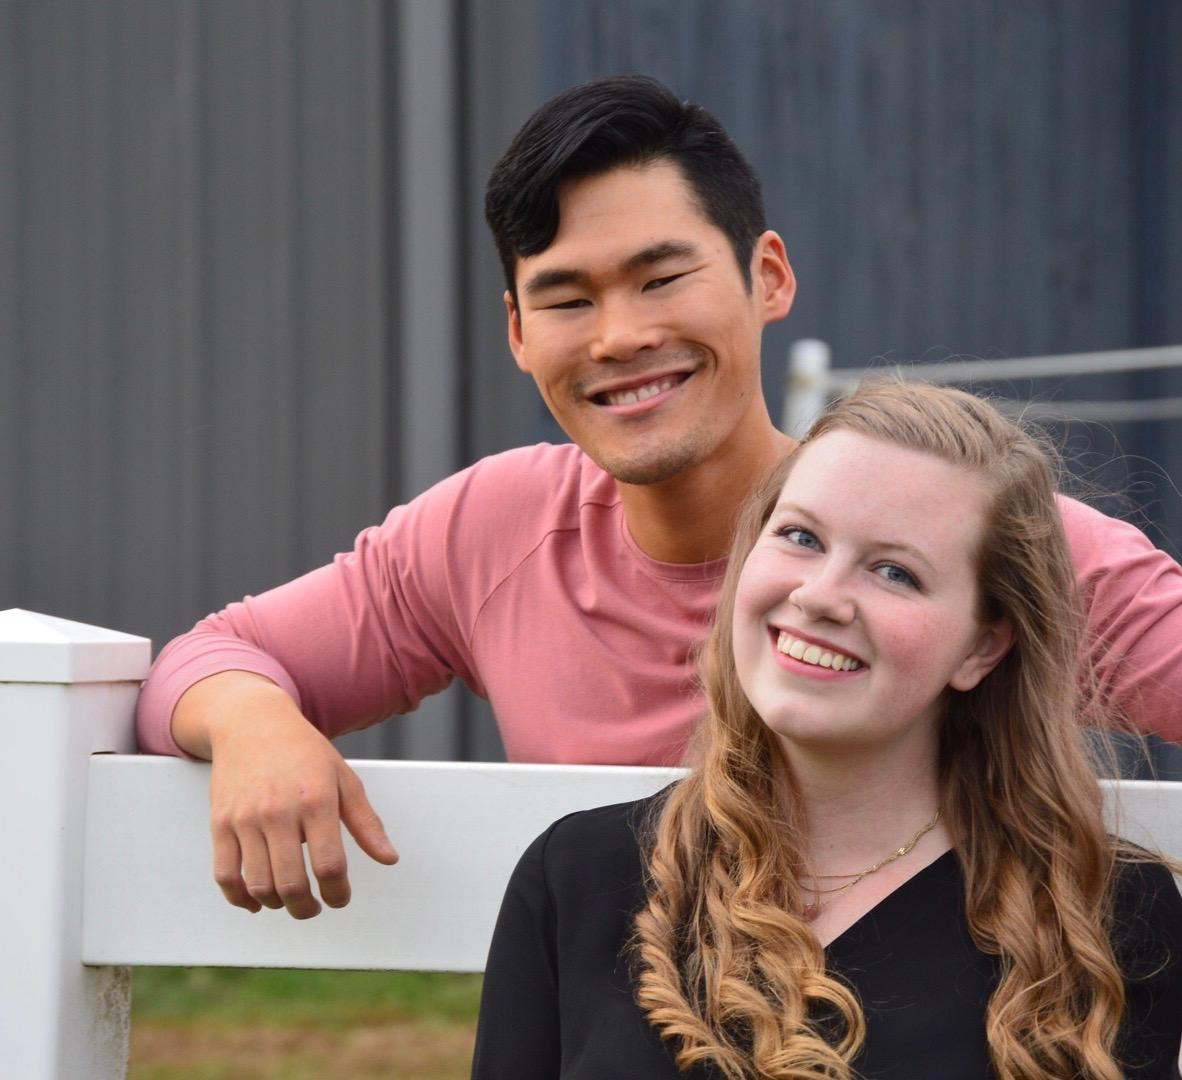 Hannah Gatlin and Curtis Souksavong's Honeymoon Registry